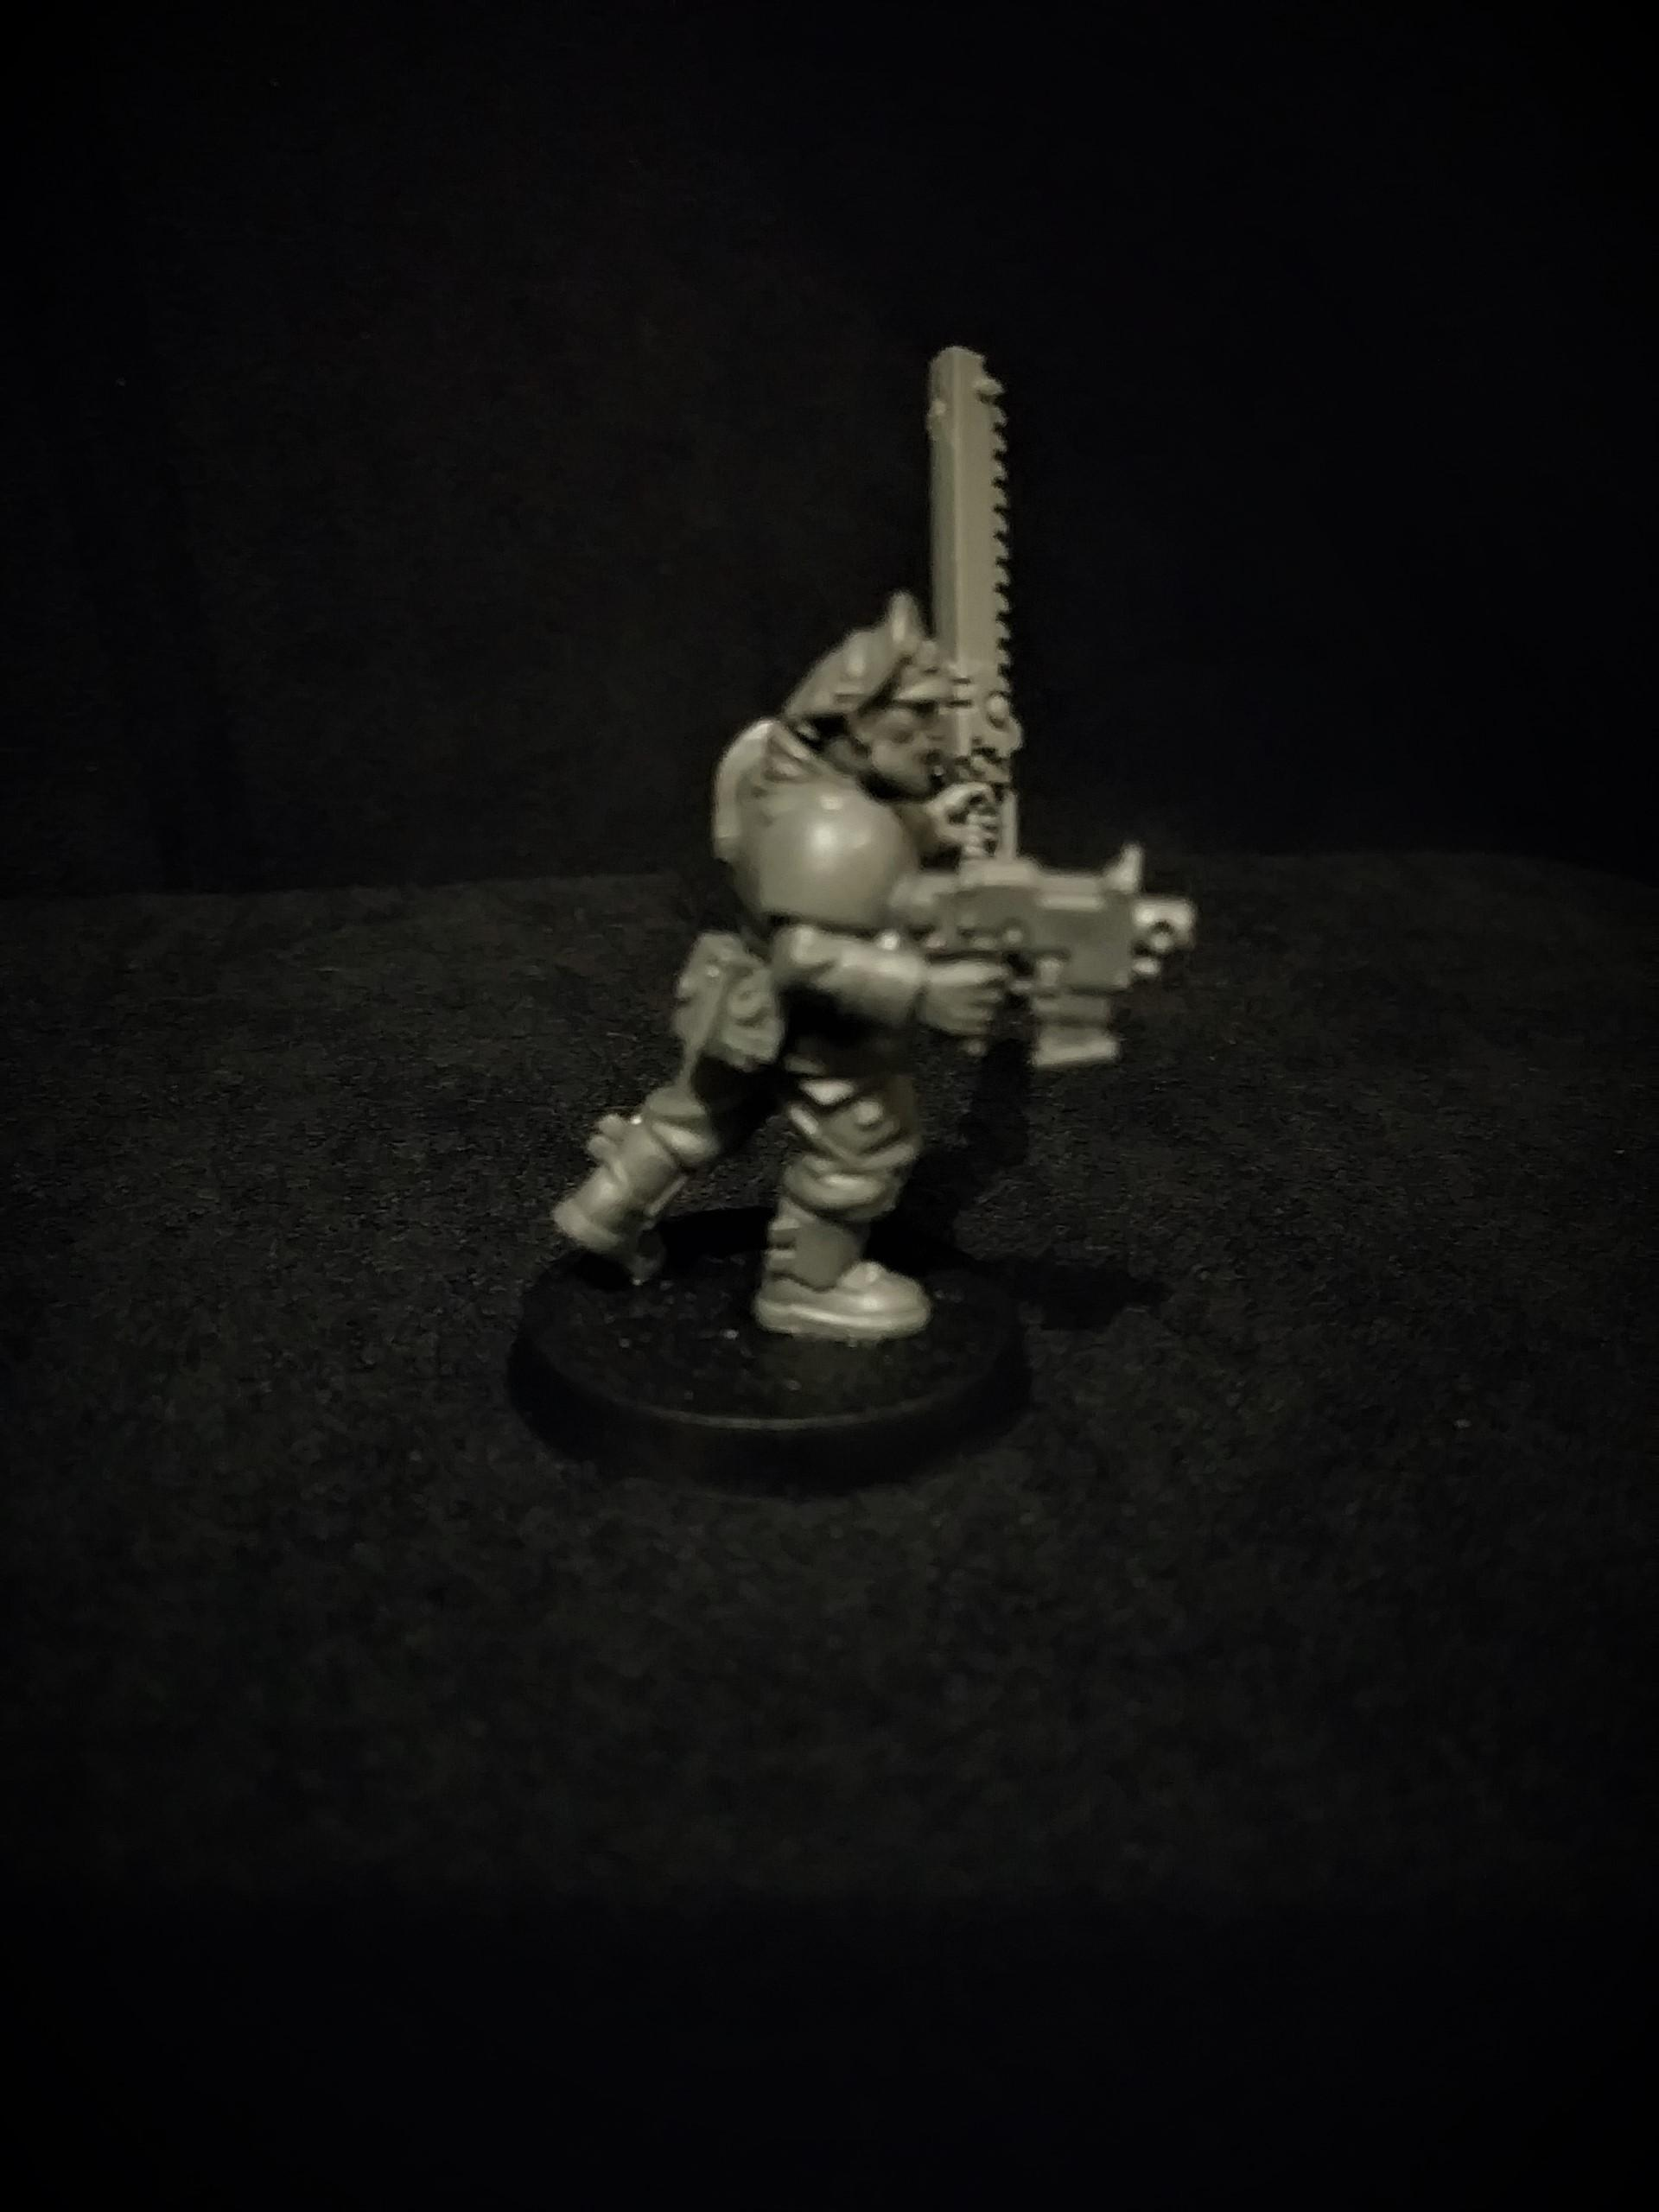 Astra Militarum, Cadian Shock Troops, Cadians, Eastern Front, Enforcer, Guard, Heretics, Imperial, Imperial Guard, Junior Officer, Kronstadt, Militia, Planetary Defence Force, Platoon Commander, Red Army, Renegades, Renegades And Heretics